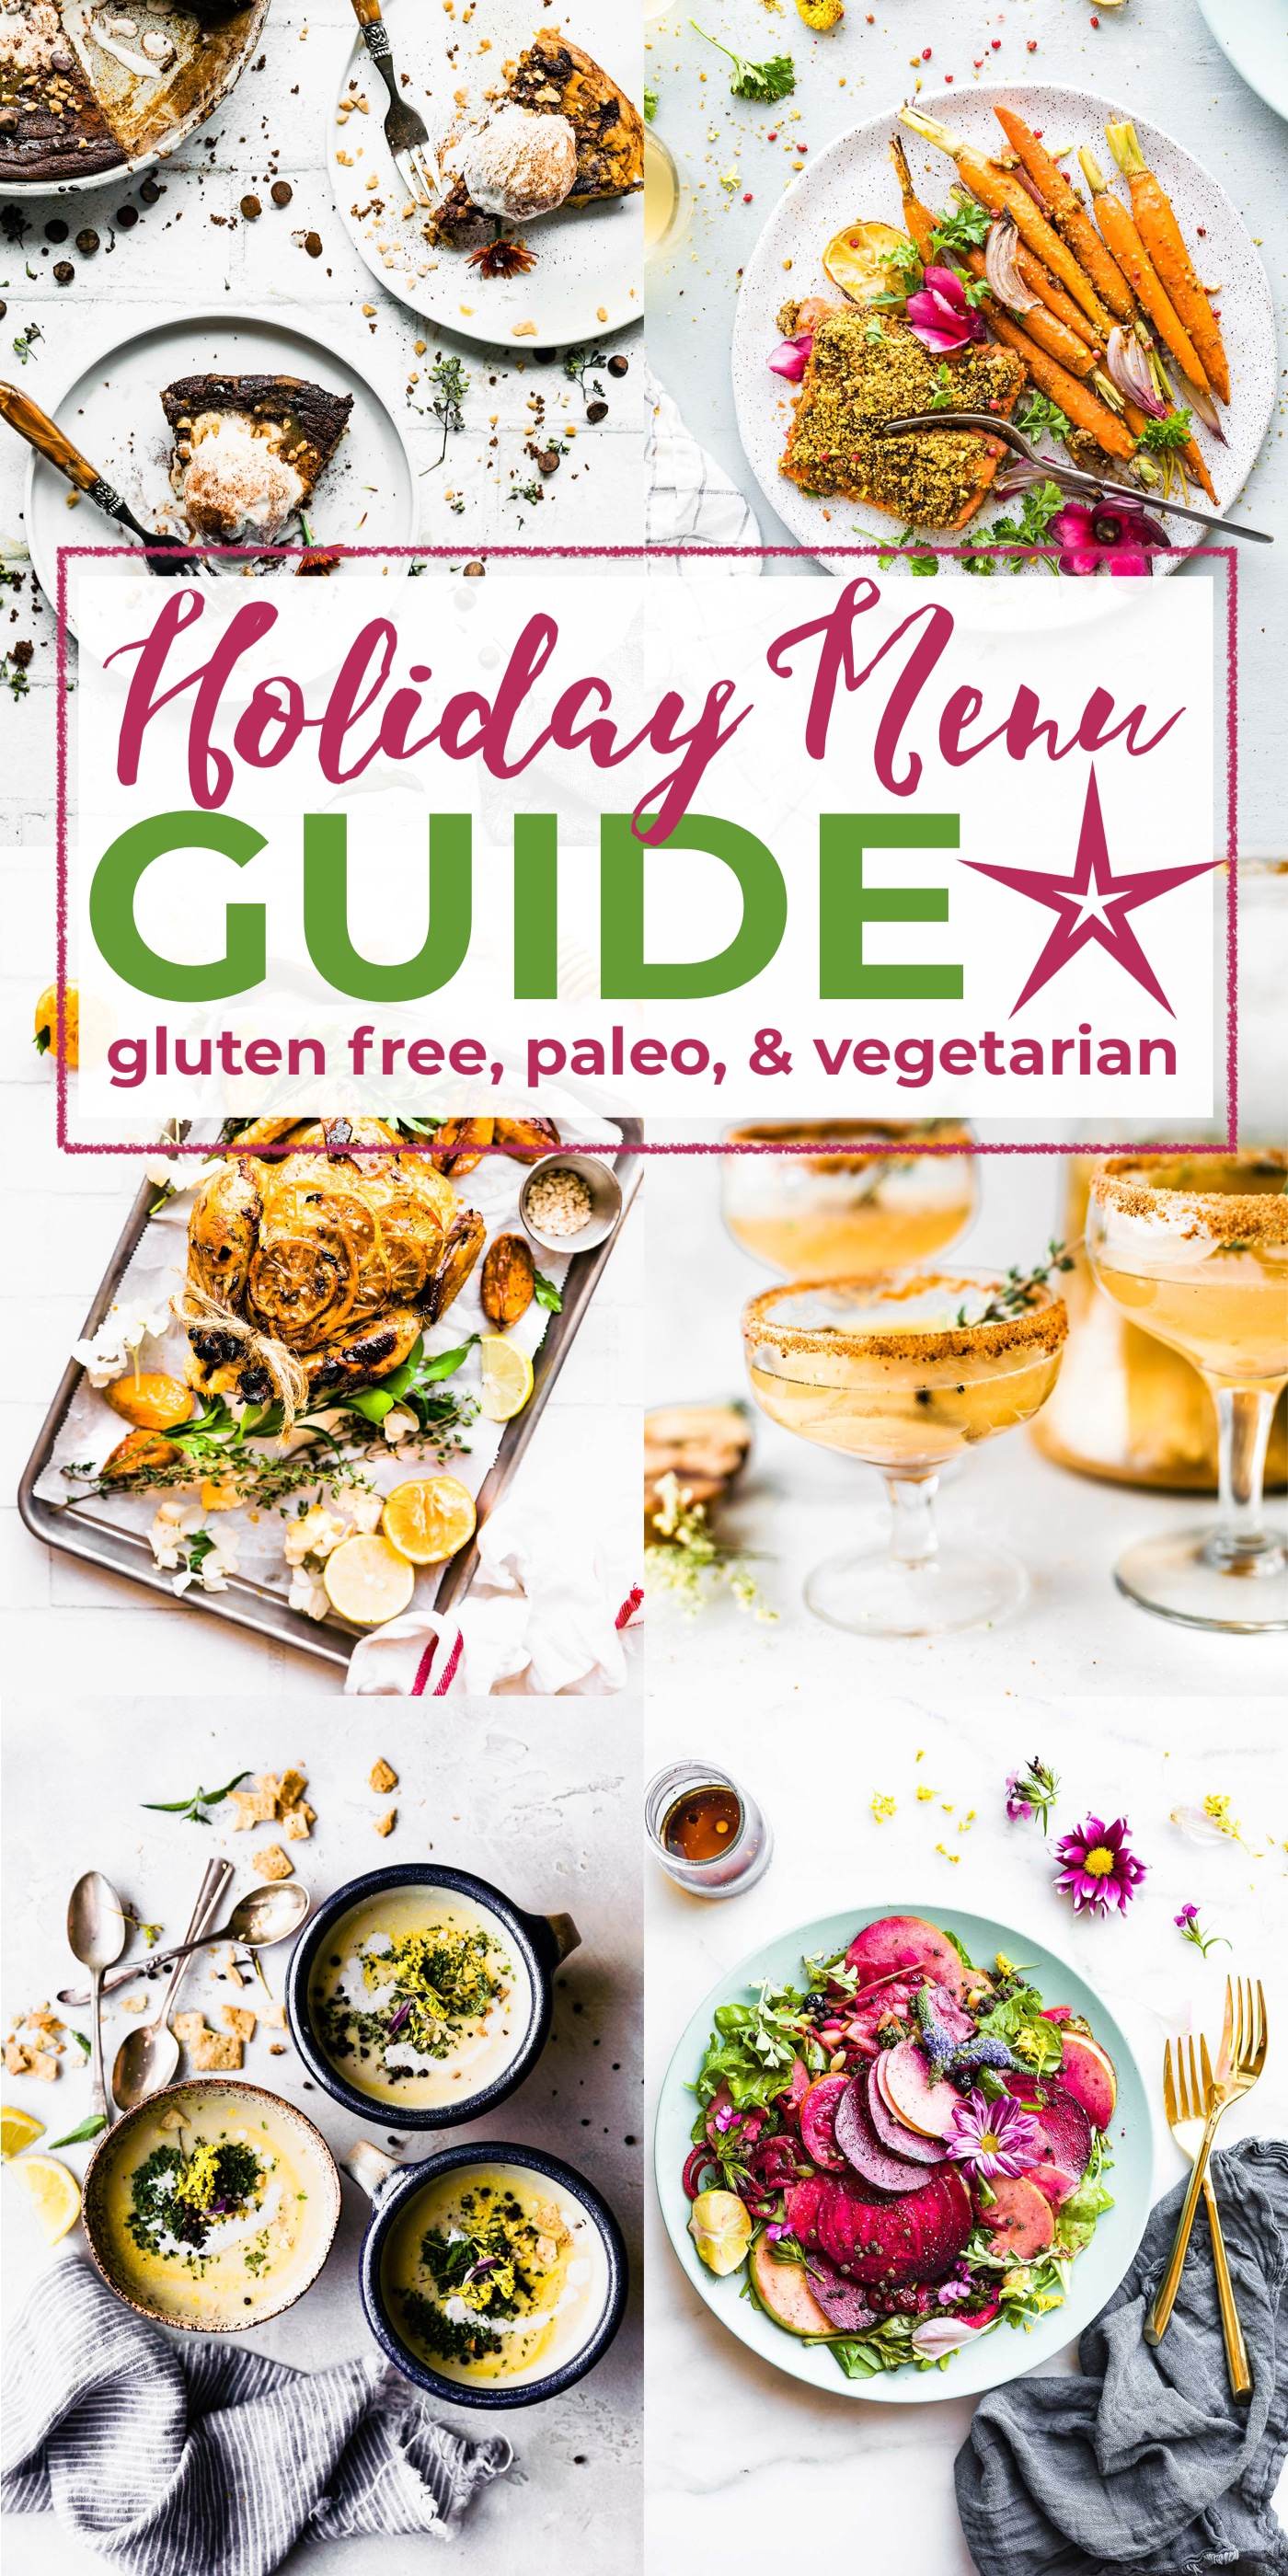 titled image: Holiday Menu Planning Guide: gluten free, paleo, and vegetarian recipes